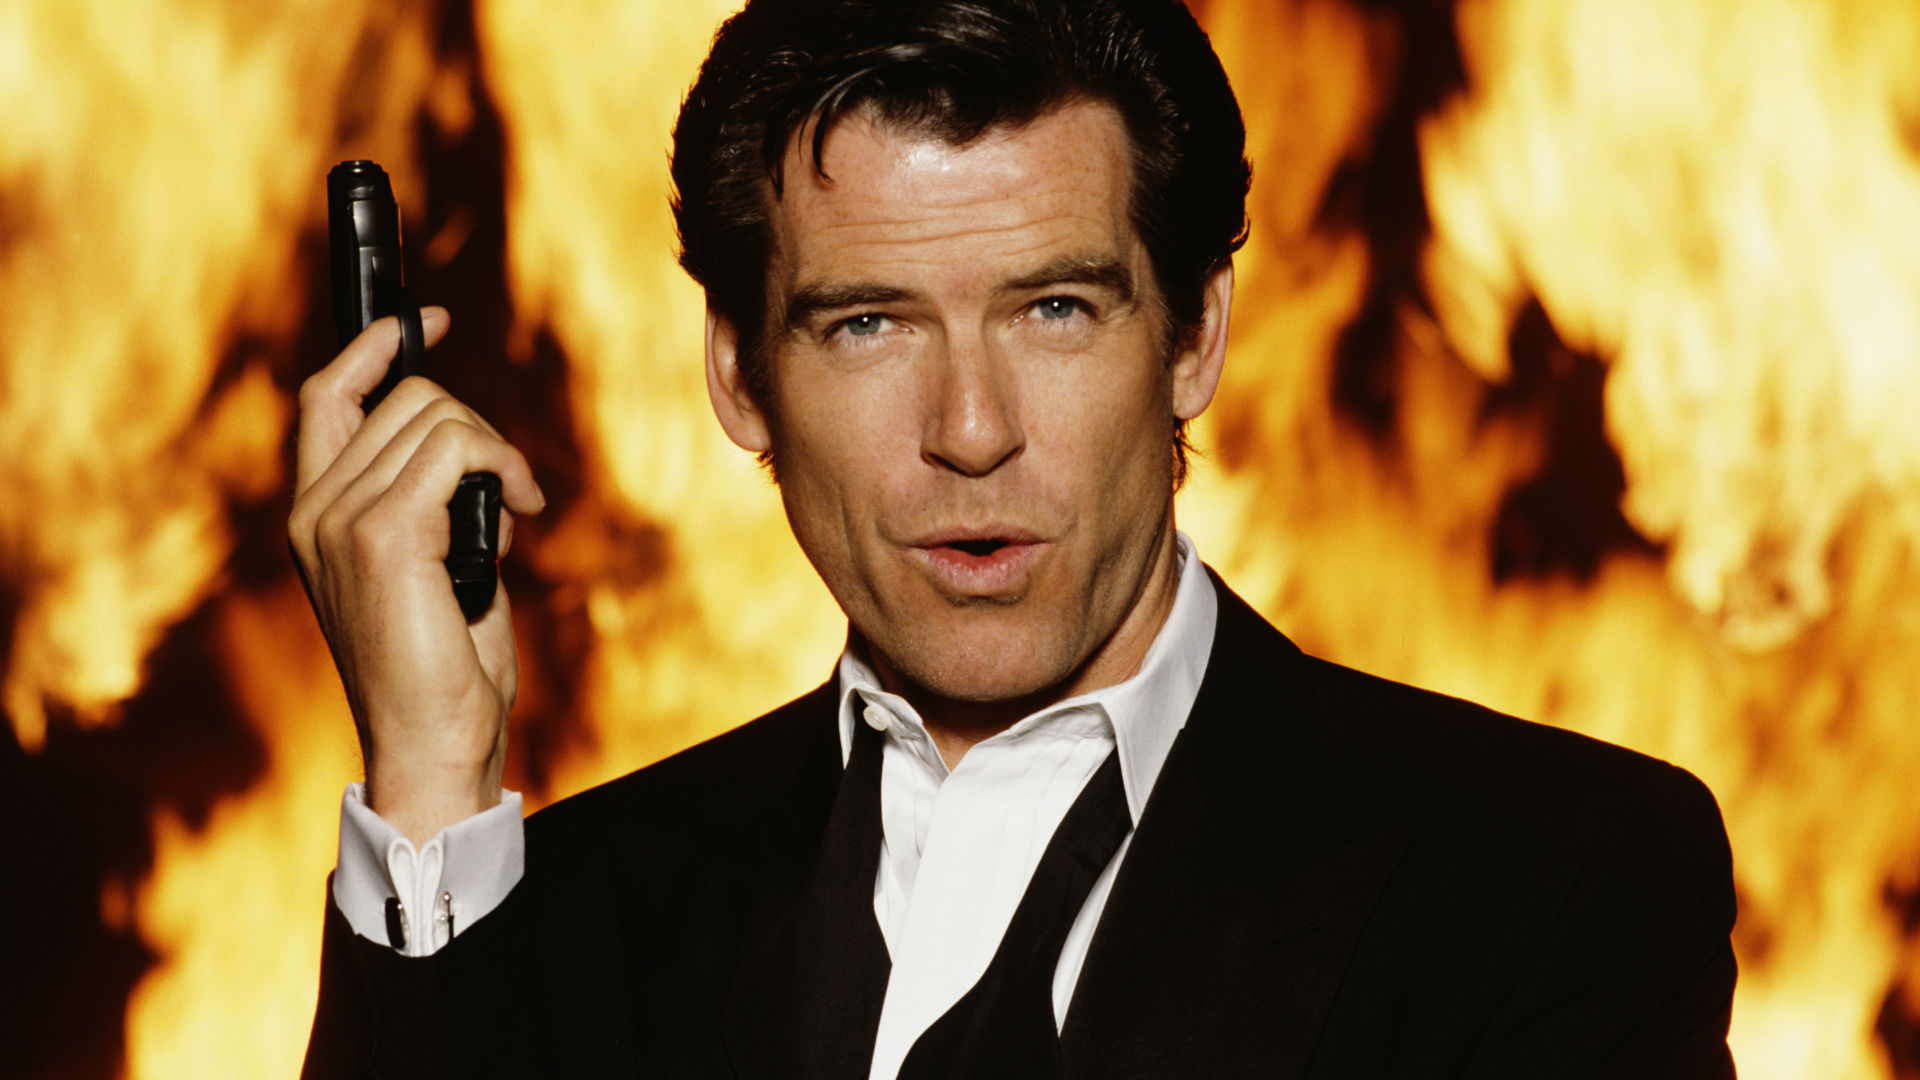 Pierce Brosnan in GoldenEye